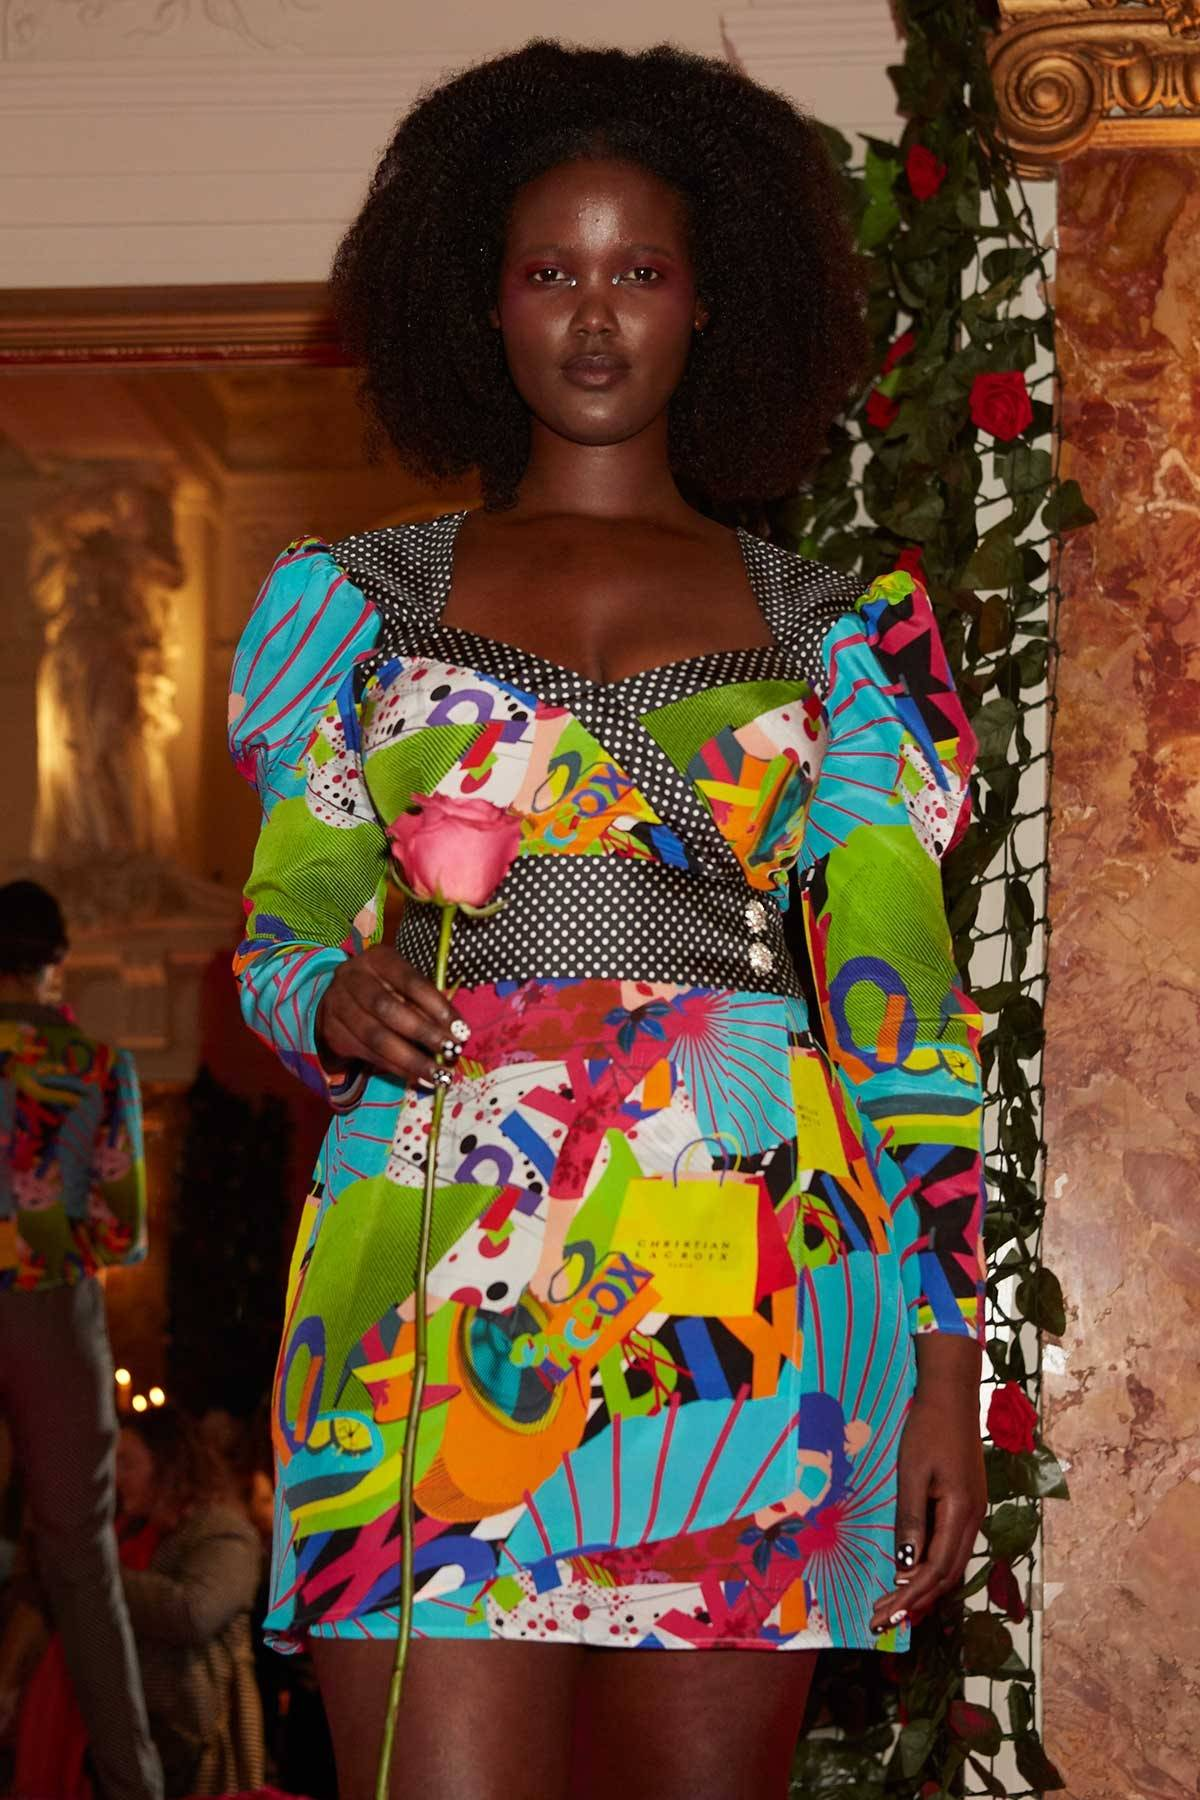 LFW AW20: Rixo collaborates with Christian Lacroix